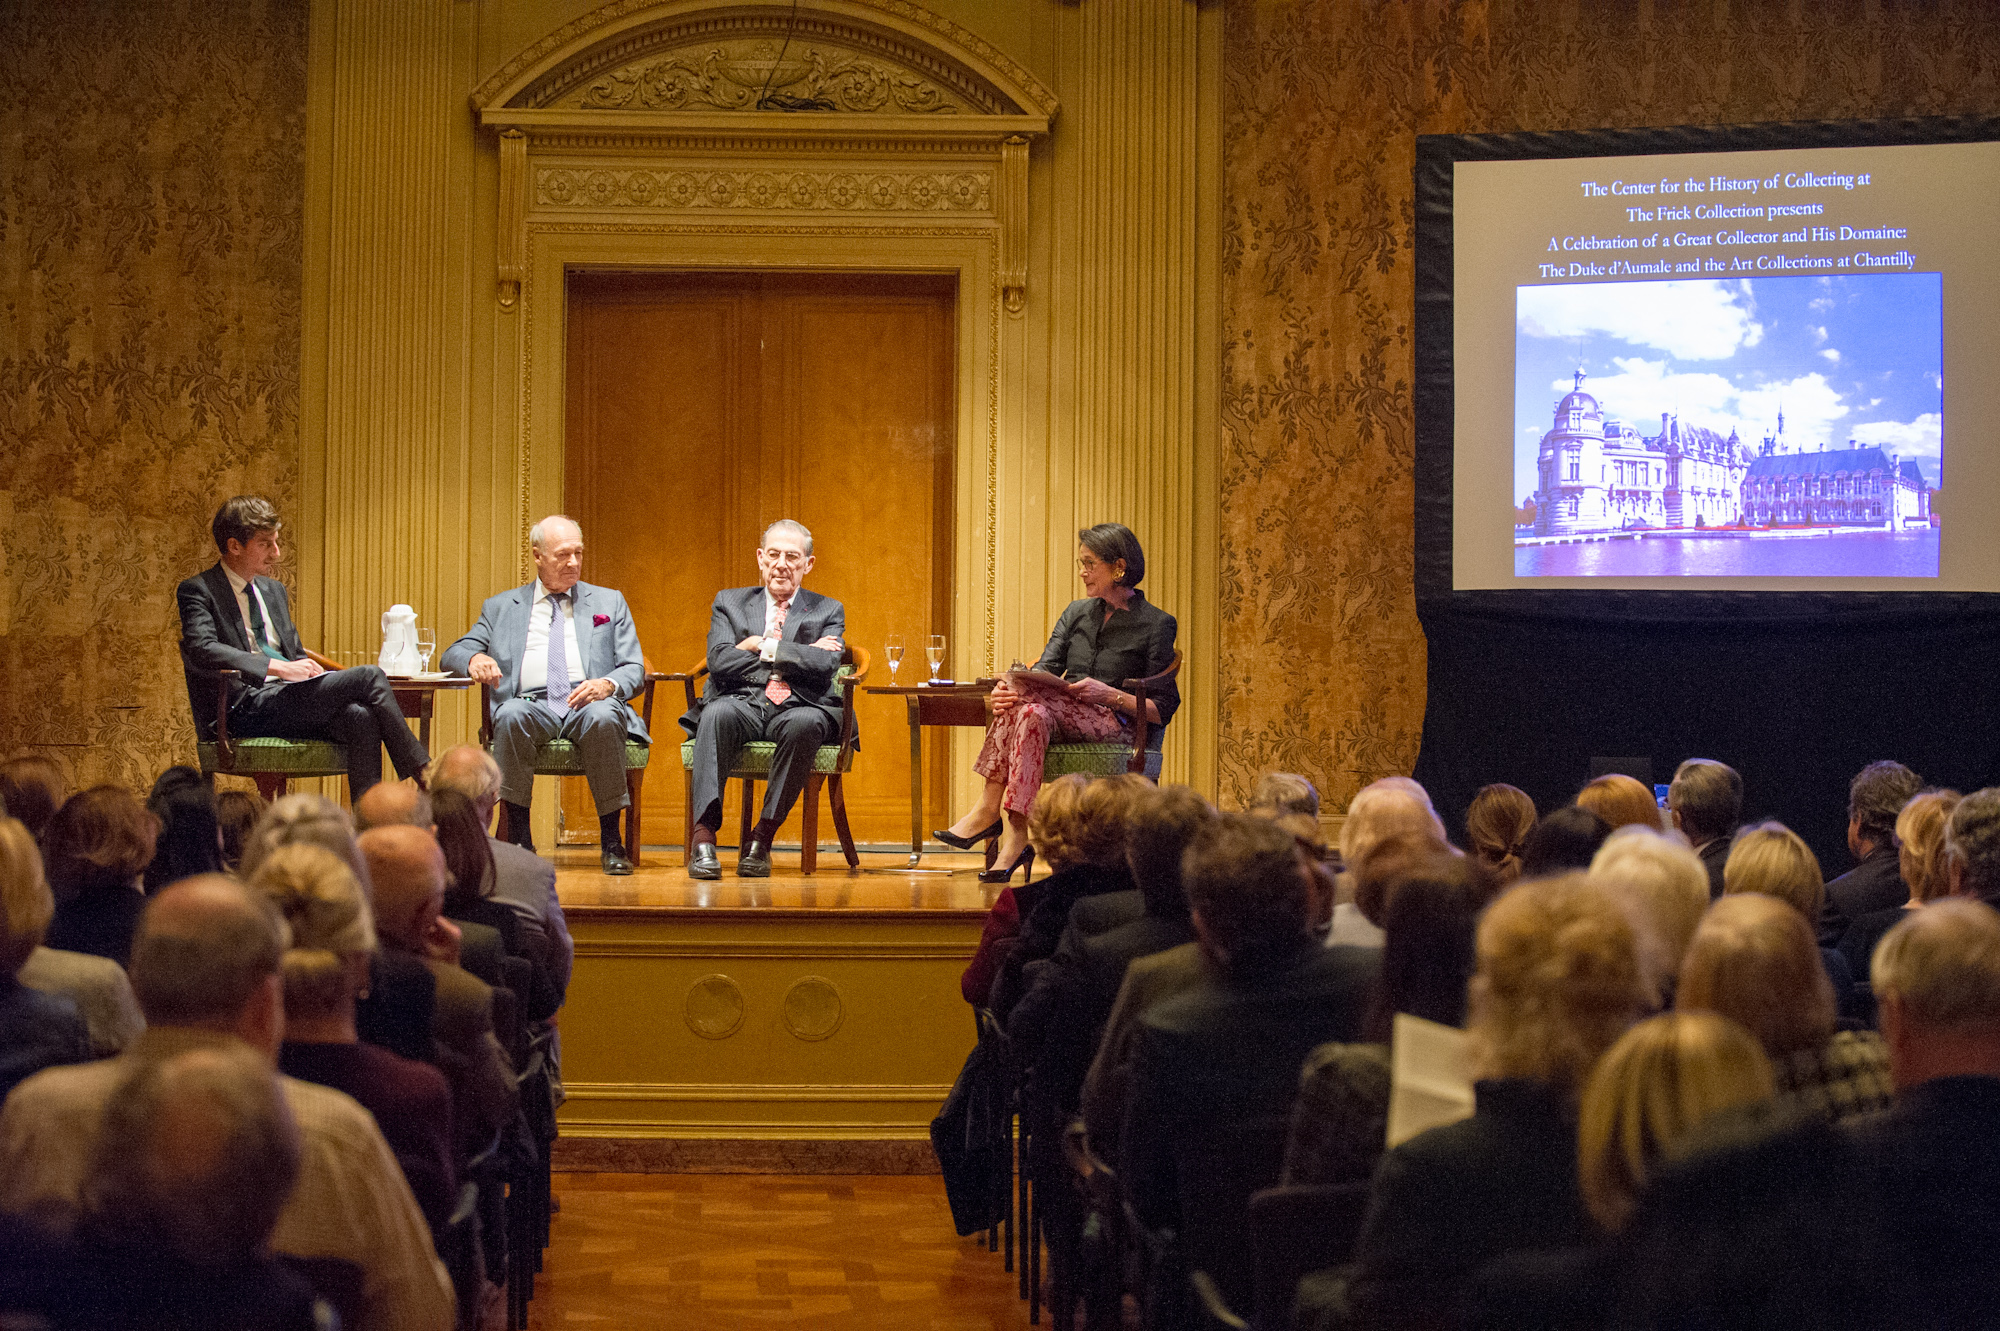 Mathieu Deldicque, Prince Amyn Aga Khan, and Philippe de Montebello discuss the Duke d'Aumale and his art collection while Inge Reist moderates.